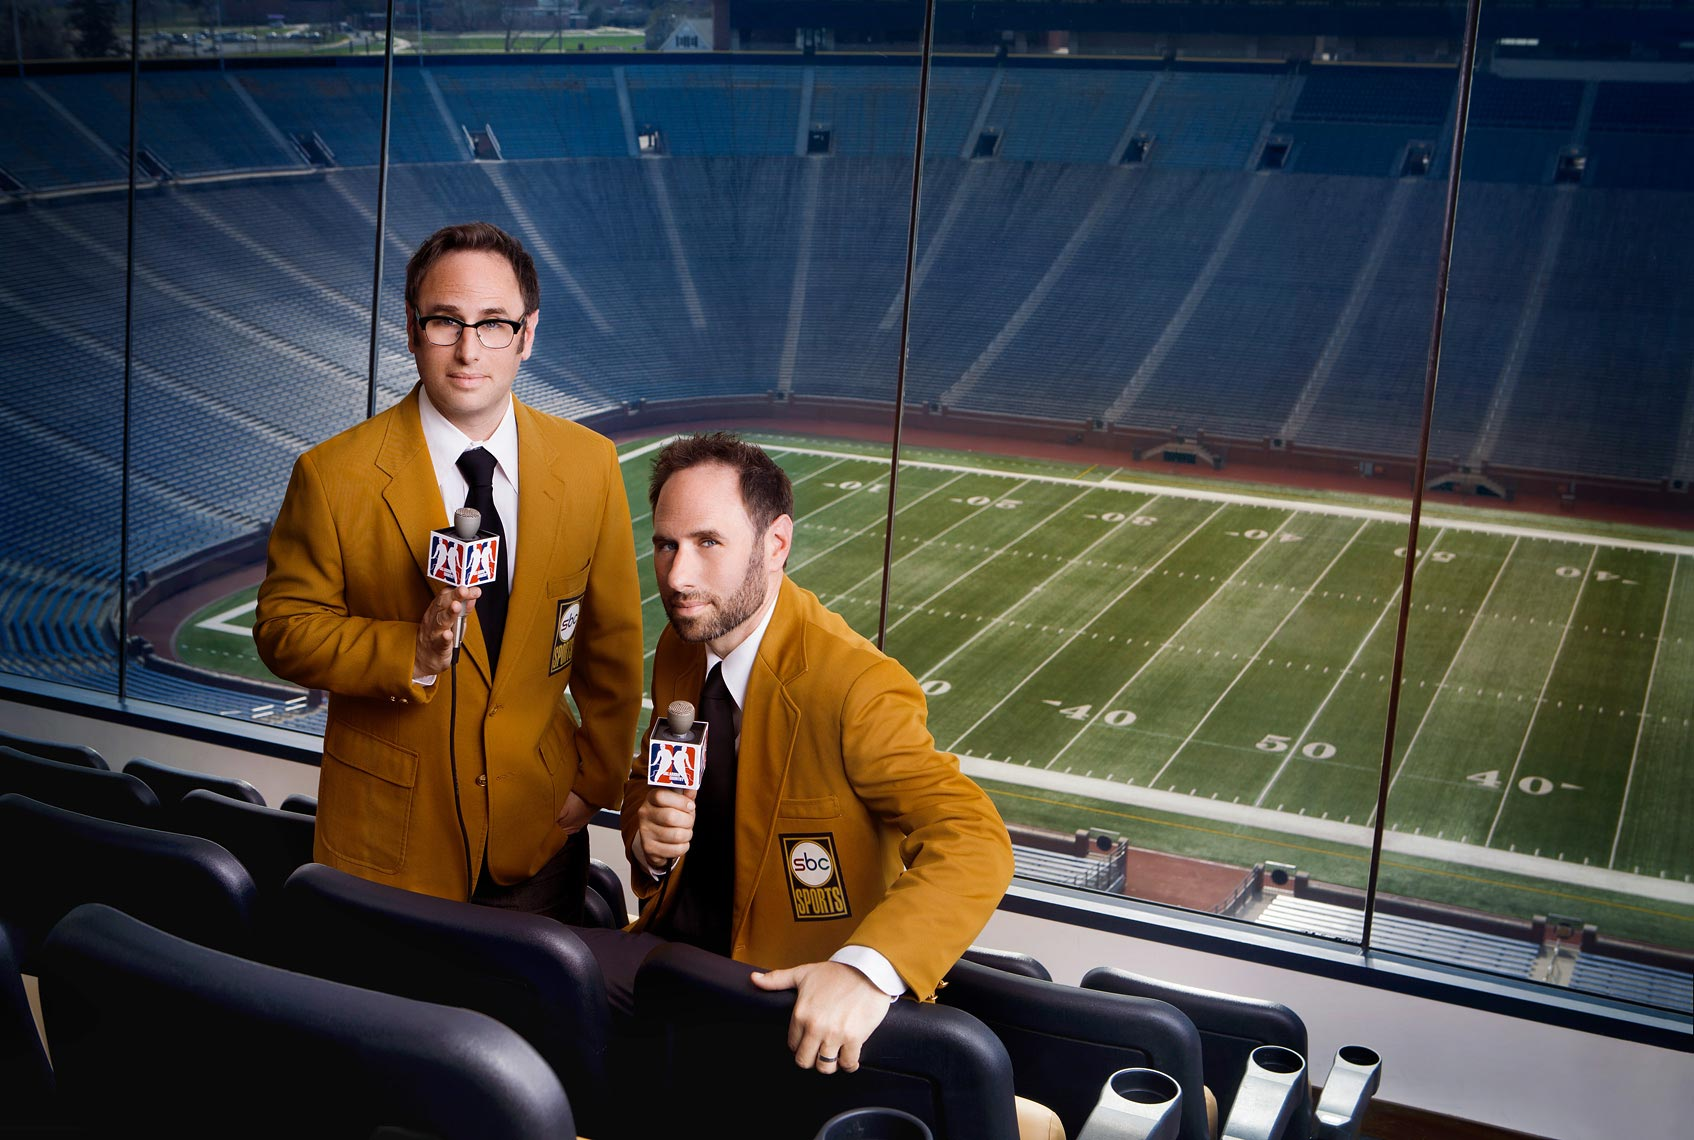 advertising-portrait-of-comedians-the-sklar-brothers-at-michigan-stadium-ann-arbor-commercial-photographer-scott-stewart